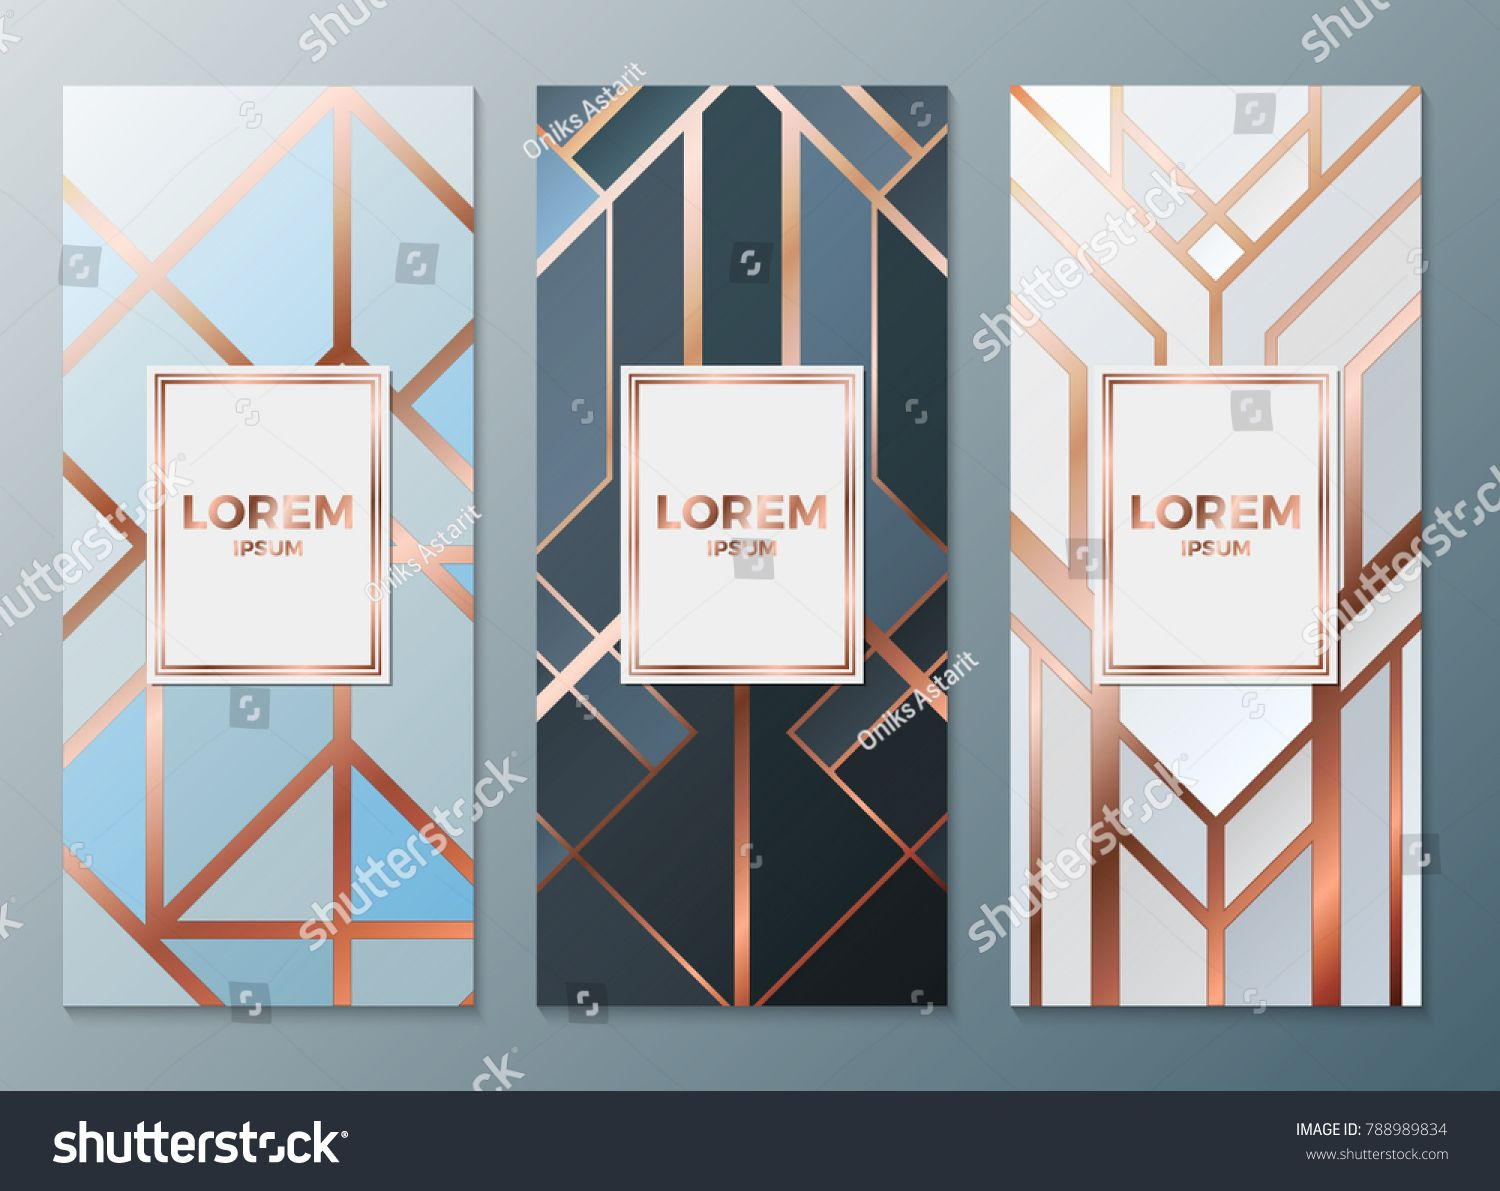 Pin By Mr Kokie On Design Template Design Art Deco Pattern Art Deco Borders